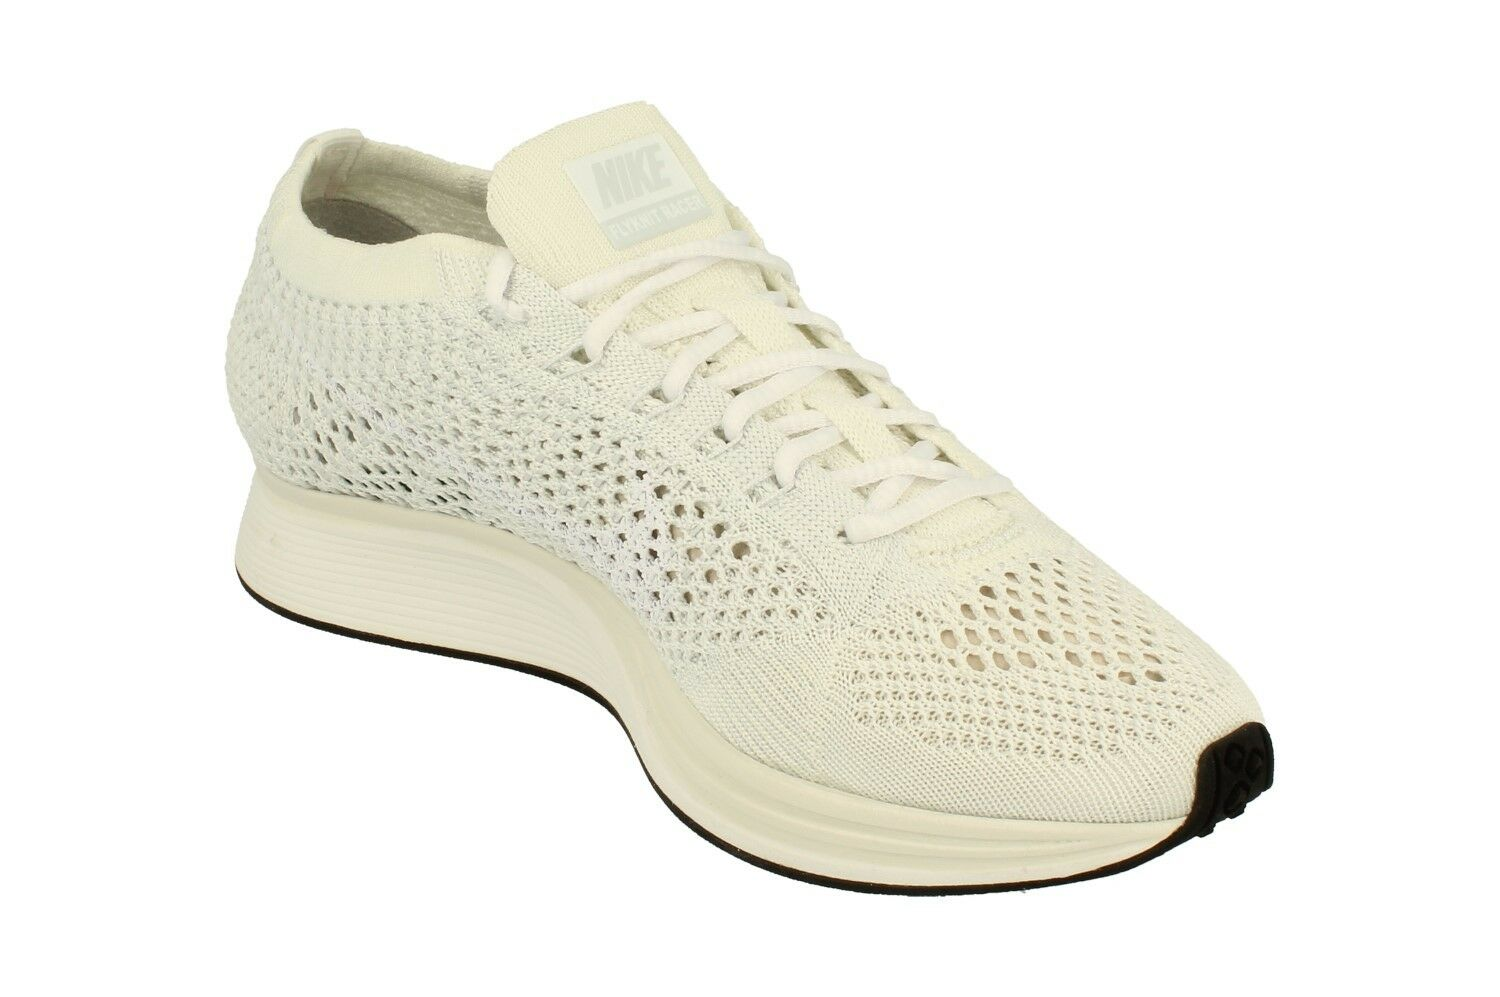 39e4883cecdb8 ... Nike Flyknit Racer Unisex Running Running Running Trainers 526628  Sneakers shoes 100 6d6870 ...